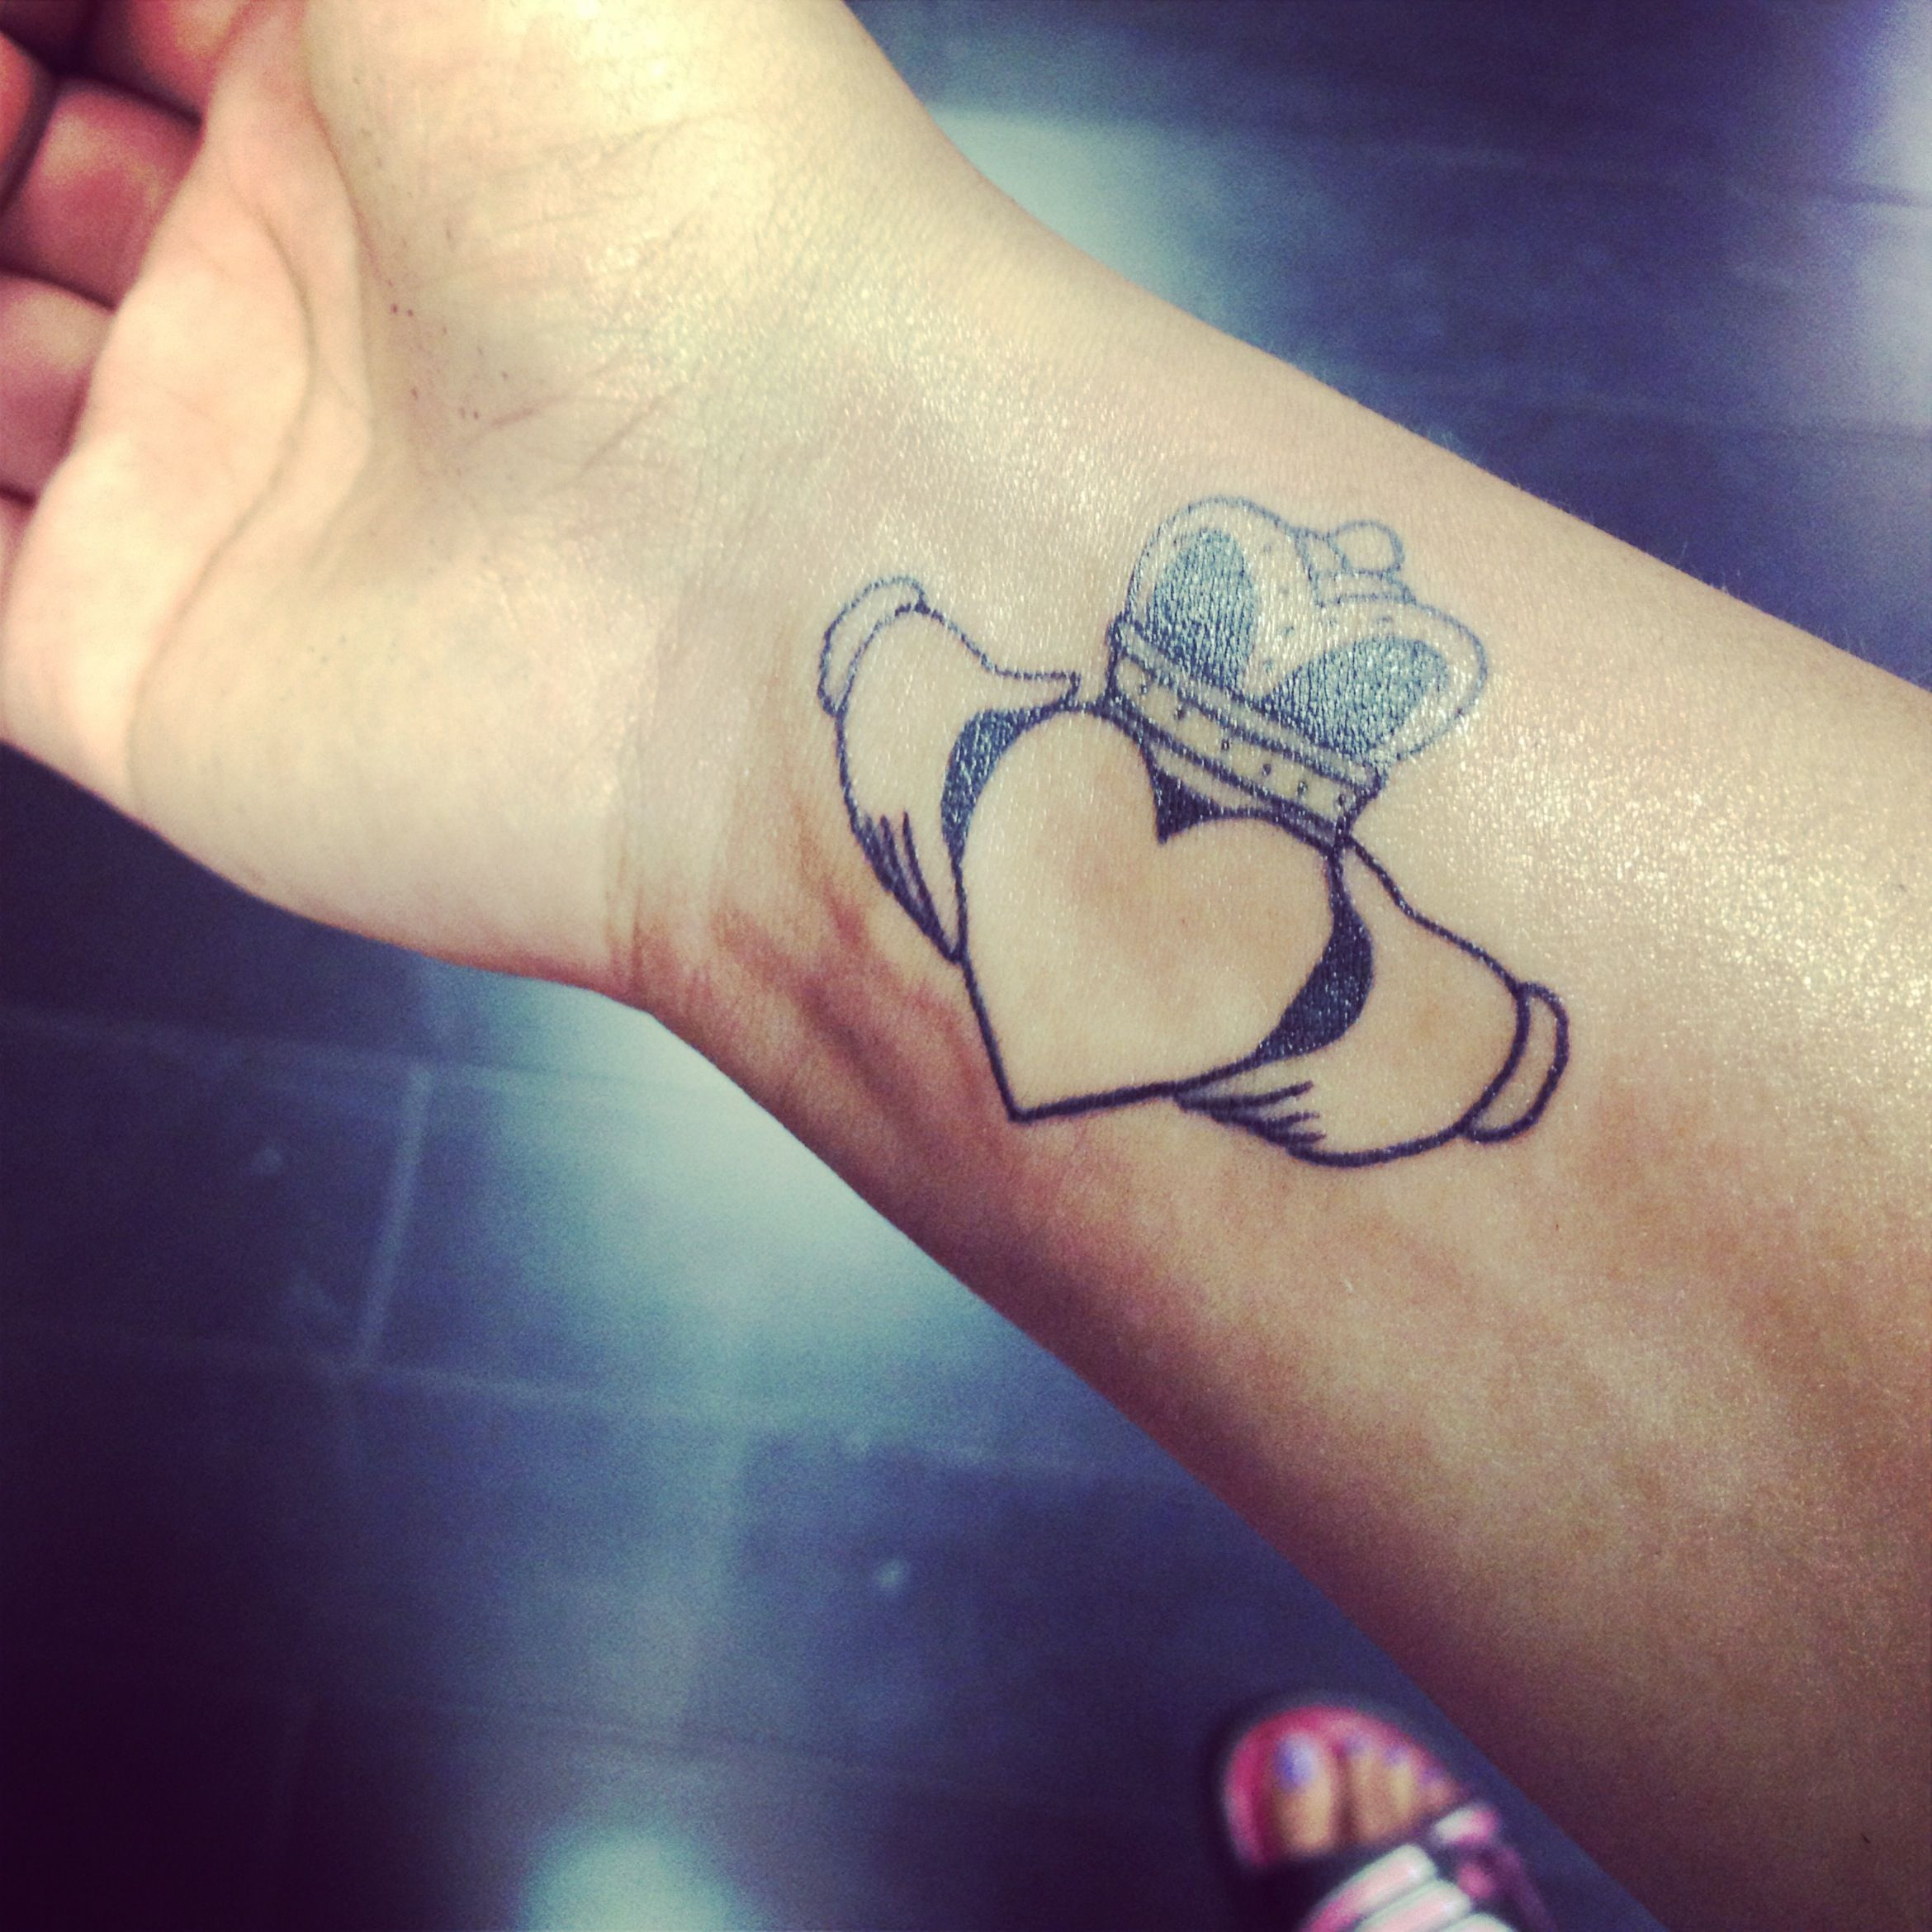 My Me Tattoo. #claddagh Love Loyalty And Friendship